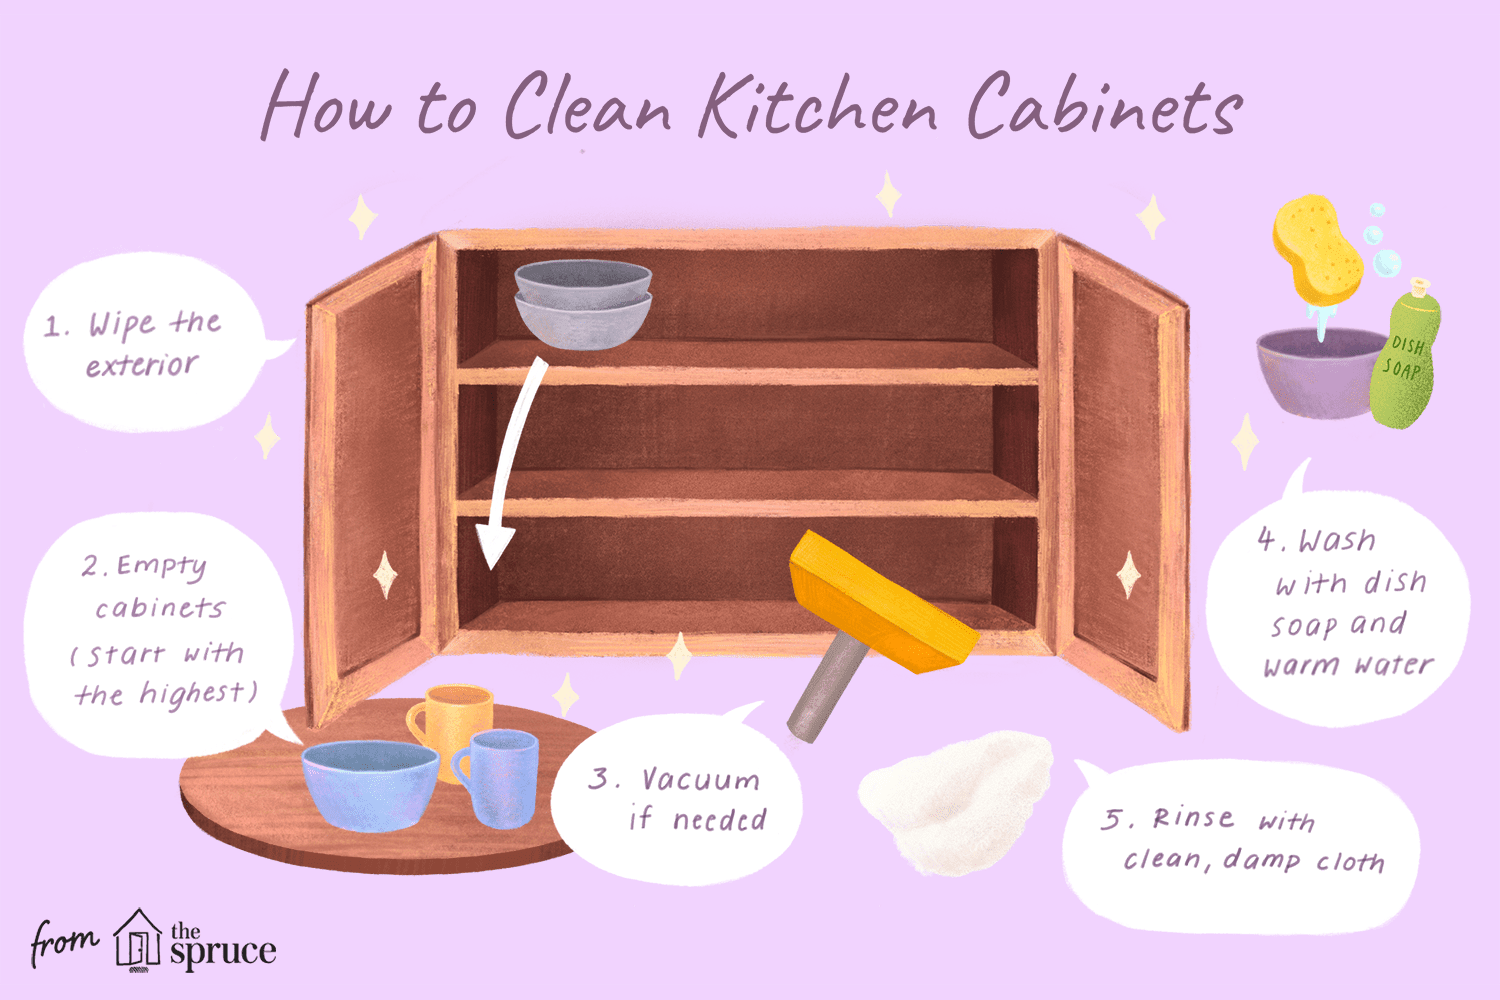 how to clean kitchen cabinets illustration